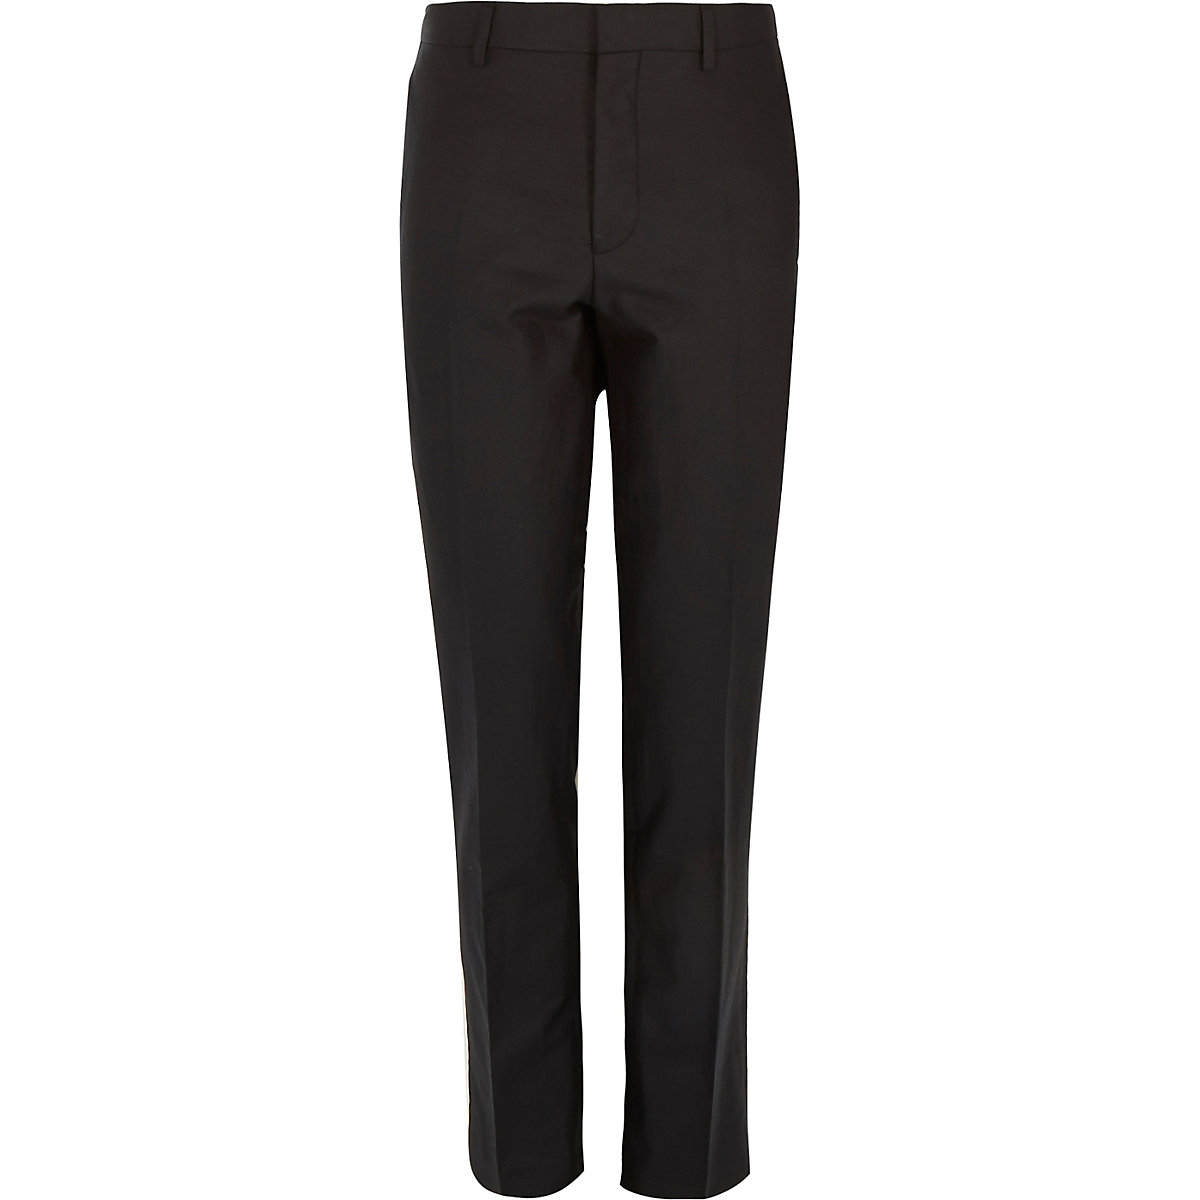 Black linen-blend skinny suit pants